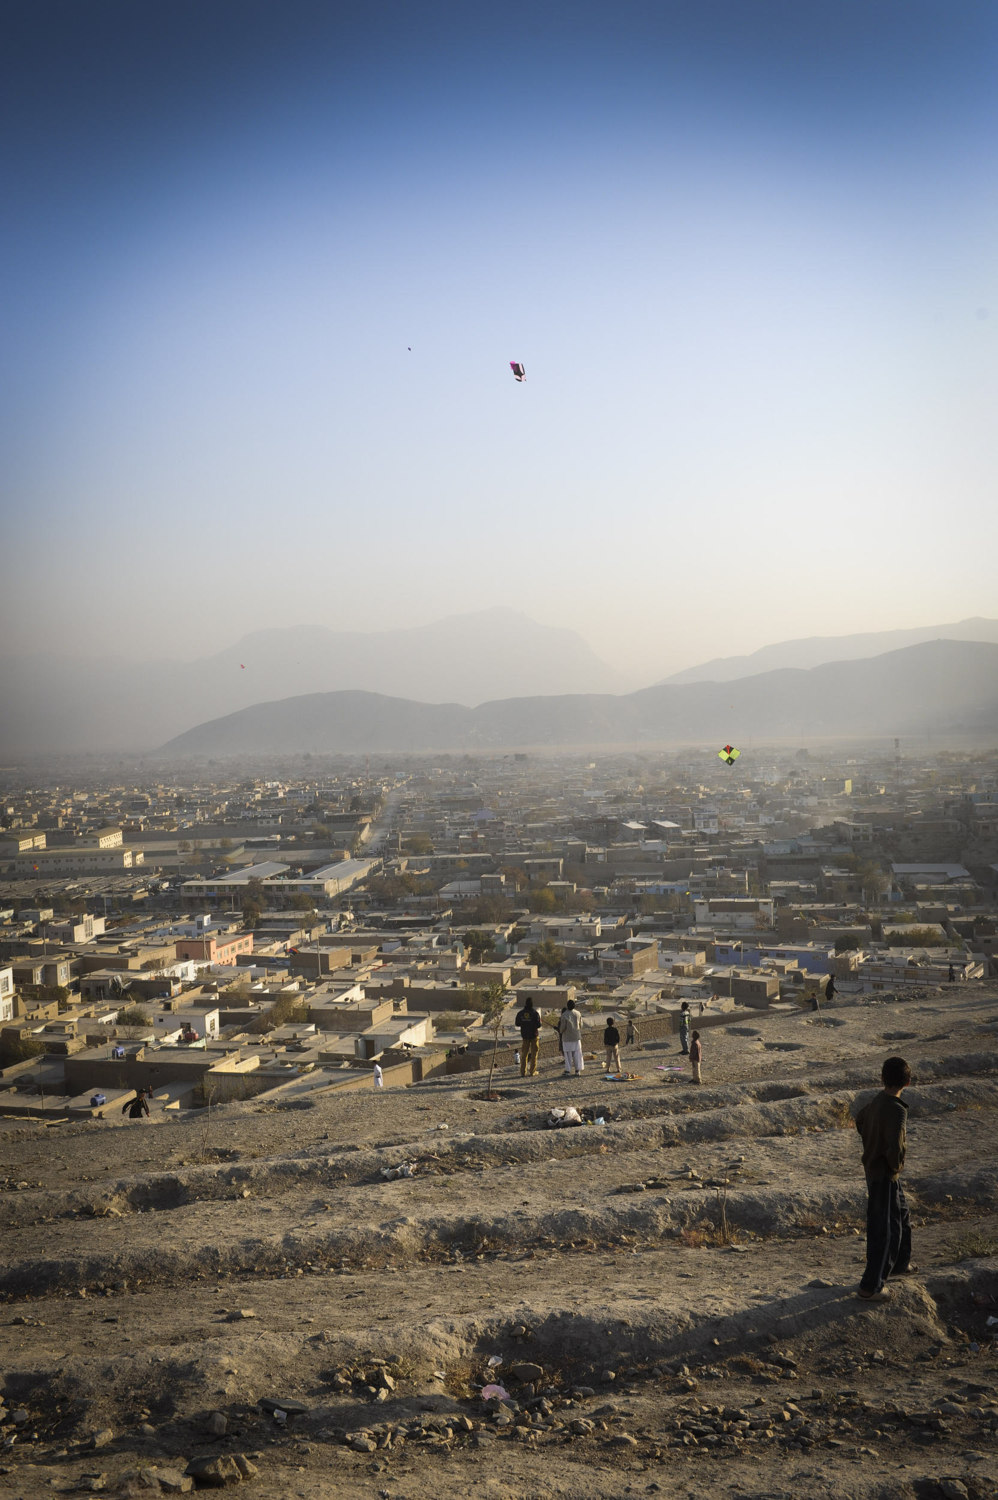 Afghans gather on a Friday on Nadir Shah Hill, or Kite Hill- to fly paper kites and battle others in a traditional match. When a Kite is cut children with long brooms have to catch the kites before their prize blows away. Kite flying is a popular recreation for Afghan children